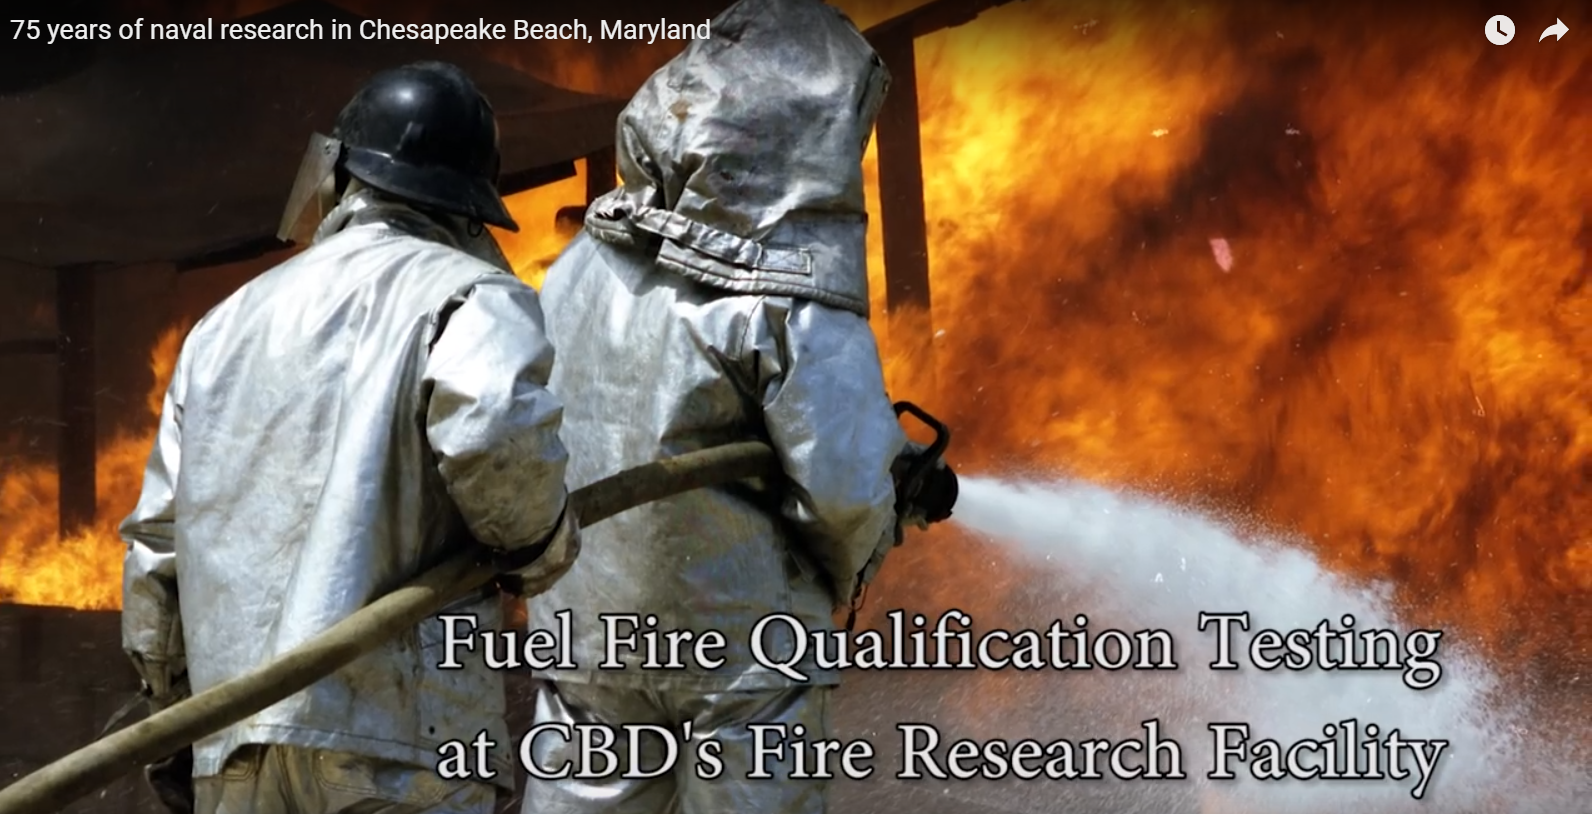 Chesapeake Beach firefighters